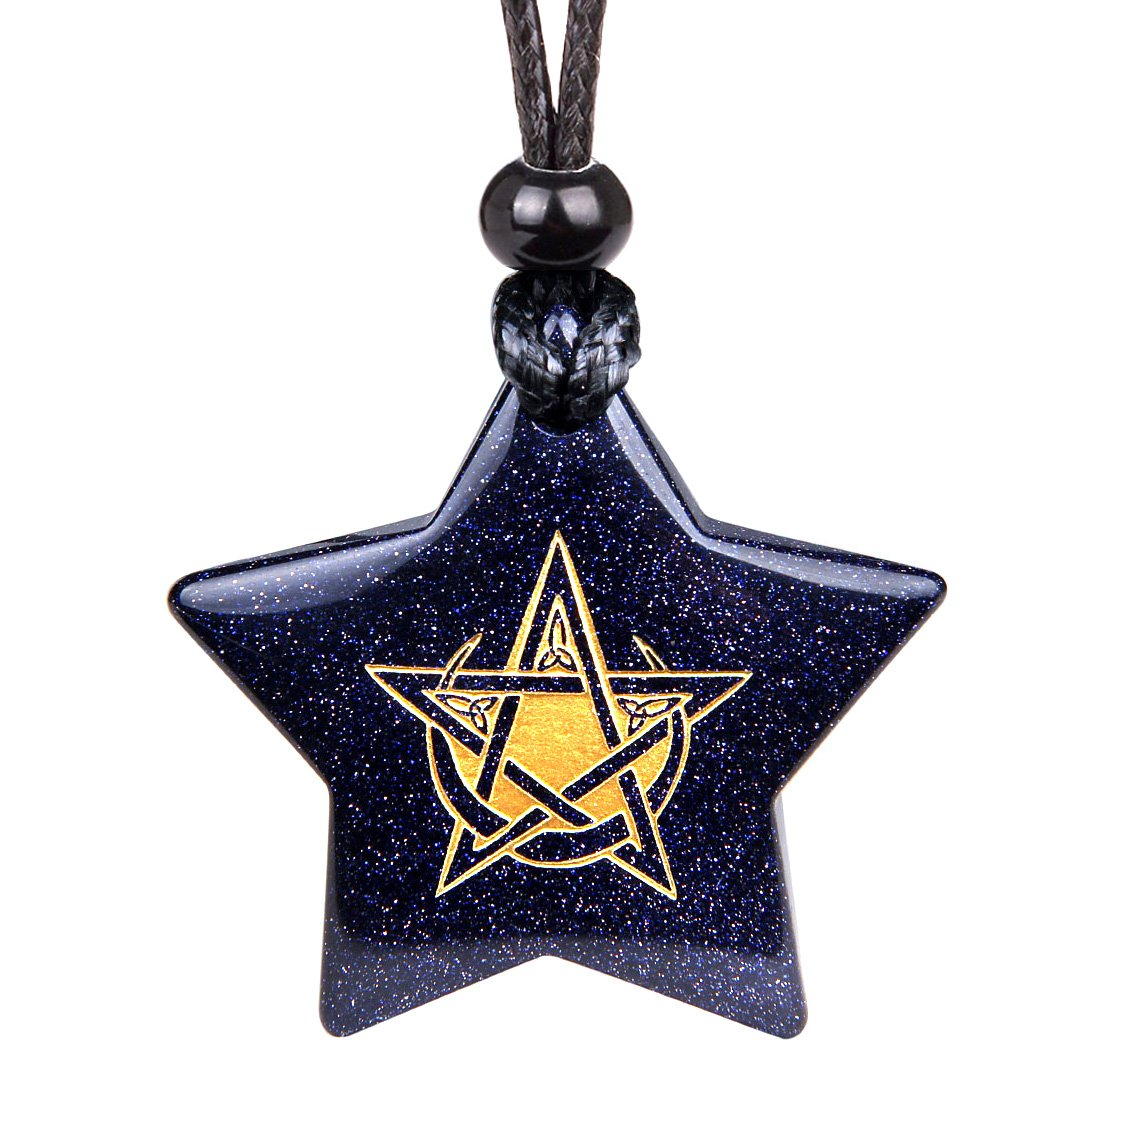 View All Lucky Stars and Pentacle Protection Magic Powers Symbols Amulets and Talismans